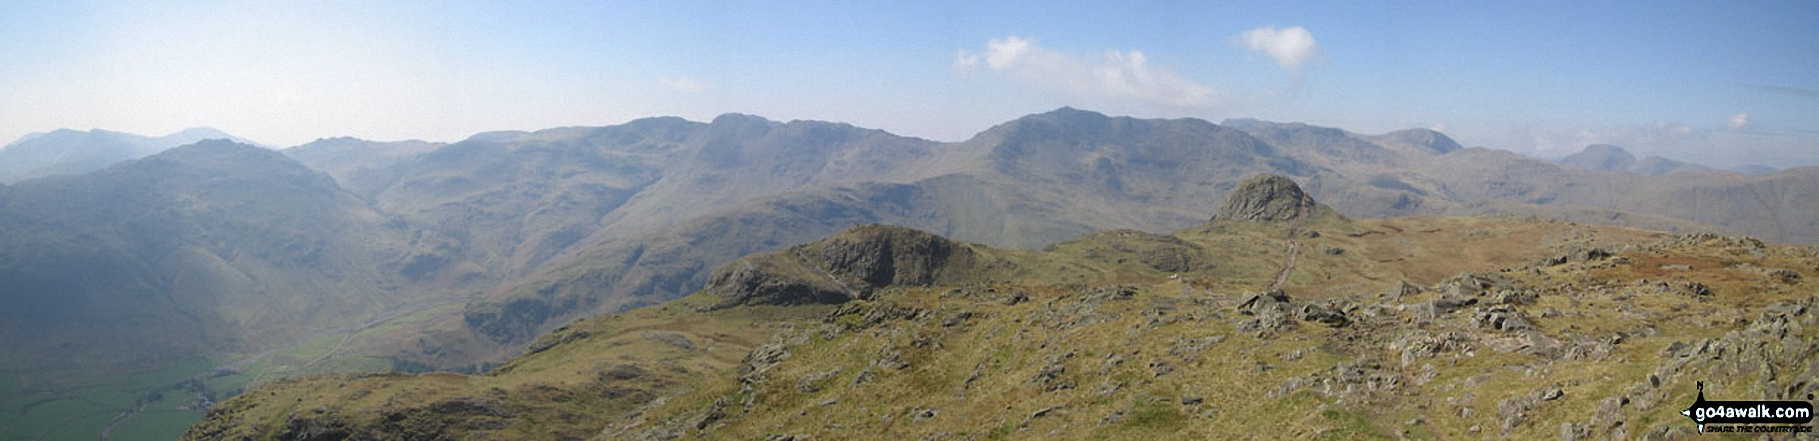 Pike of Blisco (Pike o' Blisco), Crinkle Crags (South Top), Crinkle Crags (Long Top), Gunson Knott, Bow Fell (Bowfell), The Scafell Massif, Great Gable and Pike of Stickle (in the foreground) from Harrison Stickle